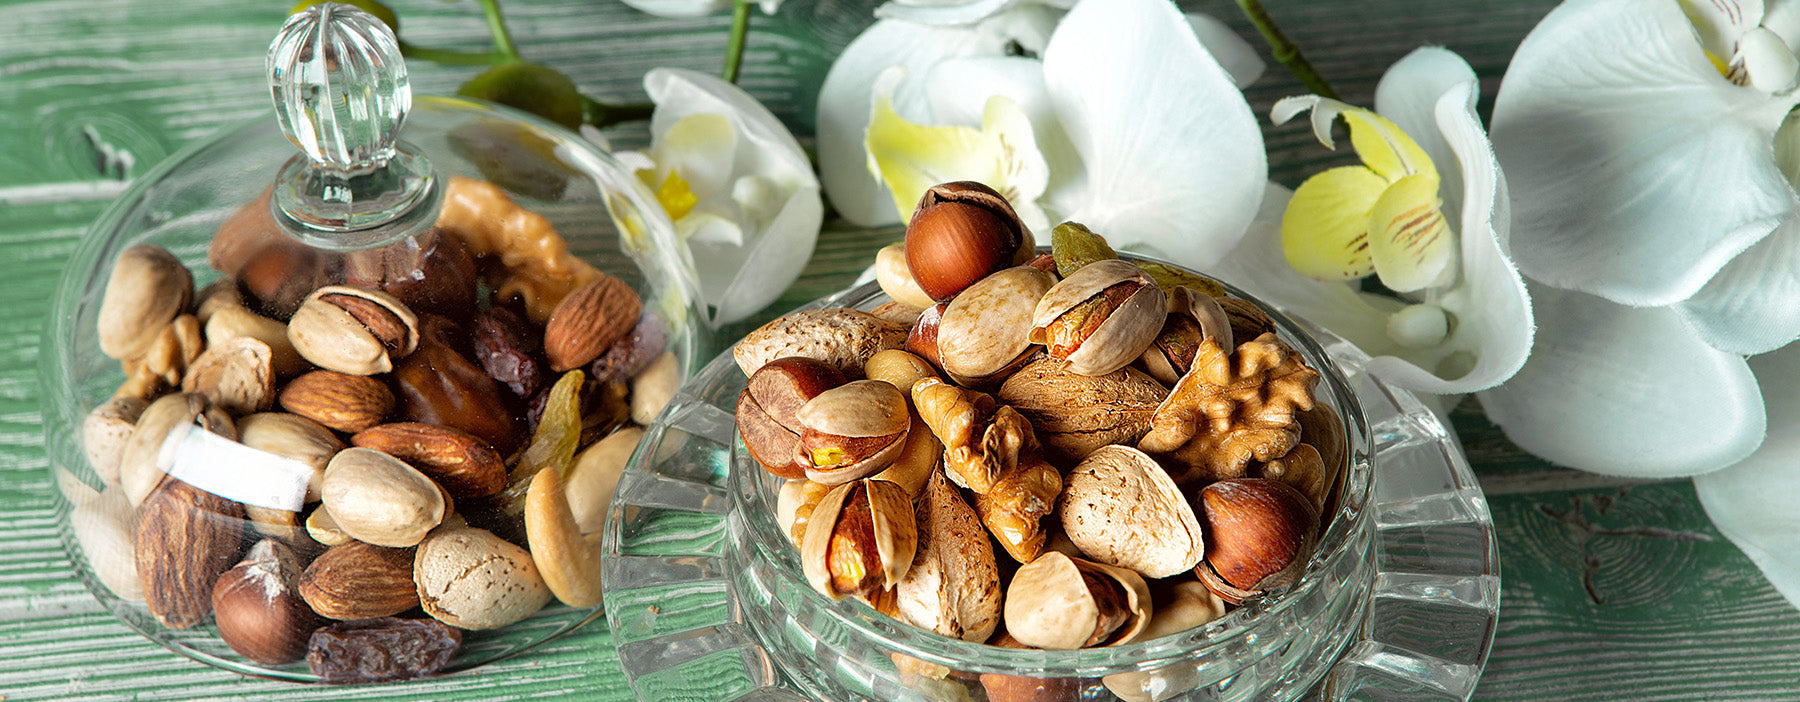 Tavazo | Dried Nuts & Fruits | Shop Nuts Online Worldwide